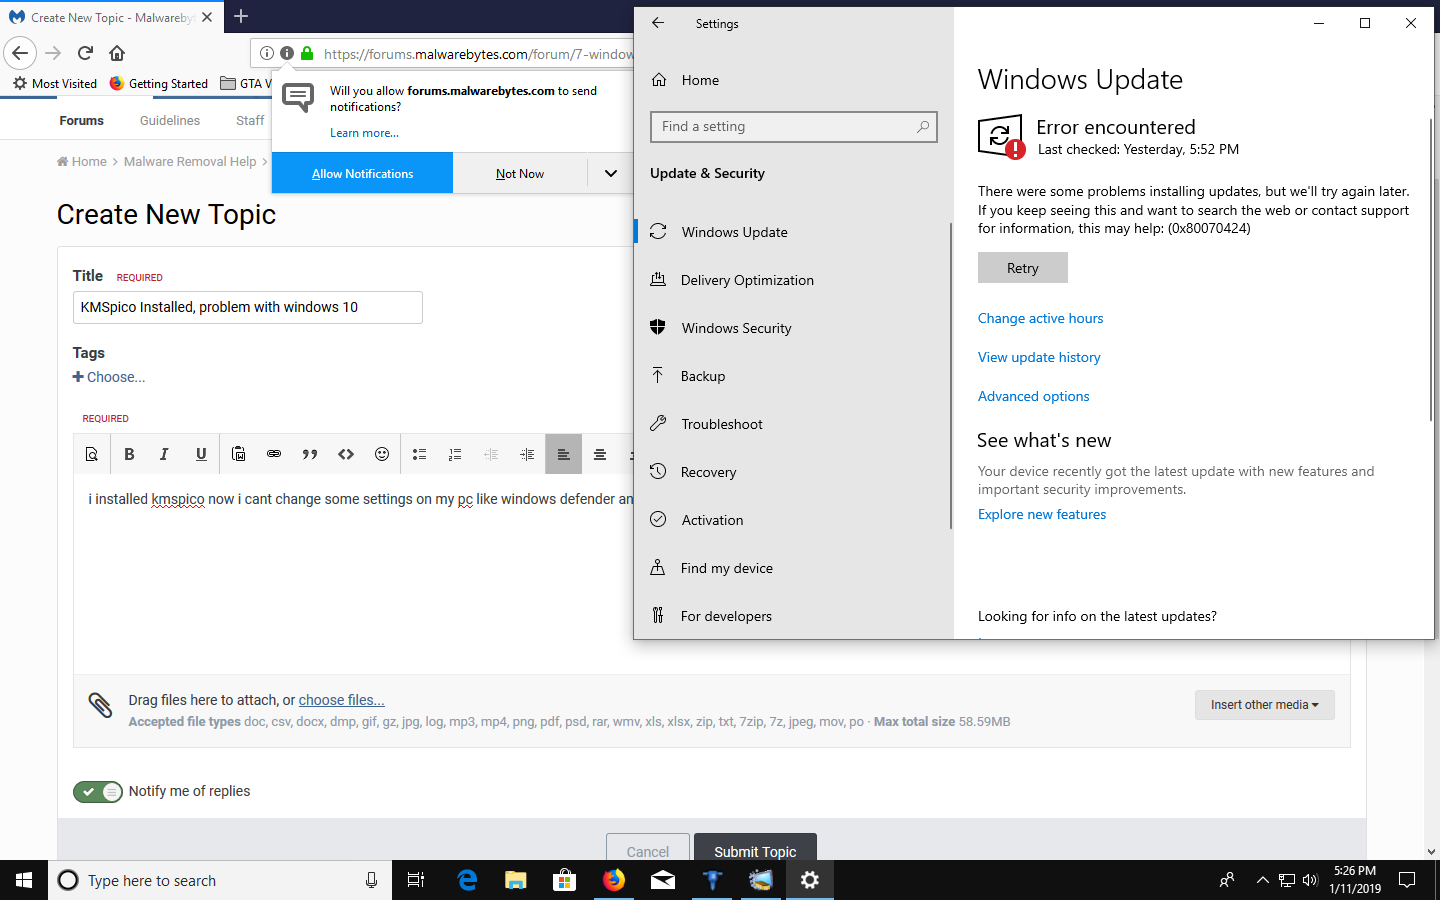 KMSpico Installed, problem with windows 10 - Resolved Malware